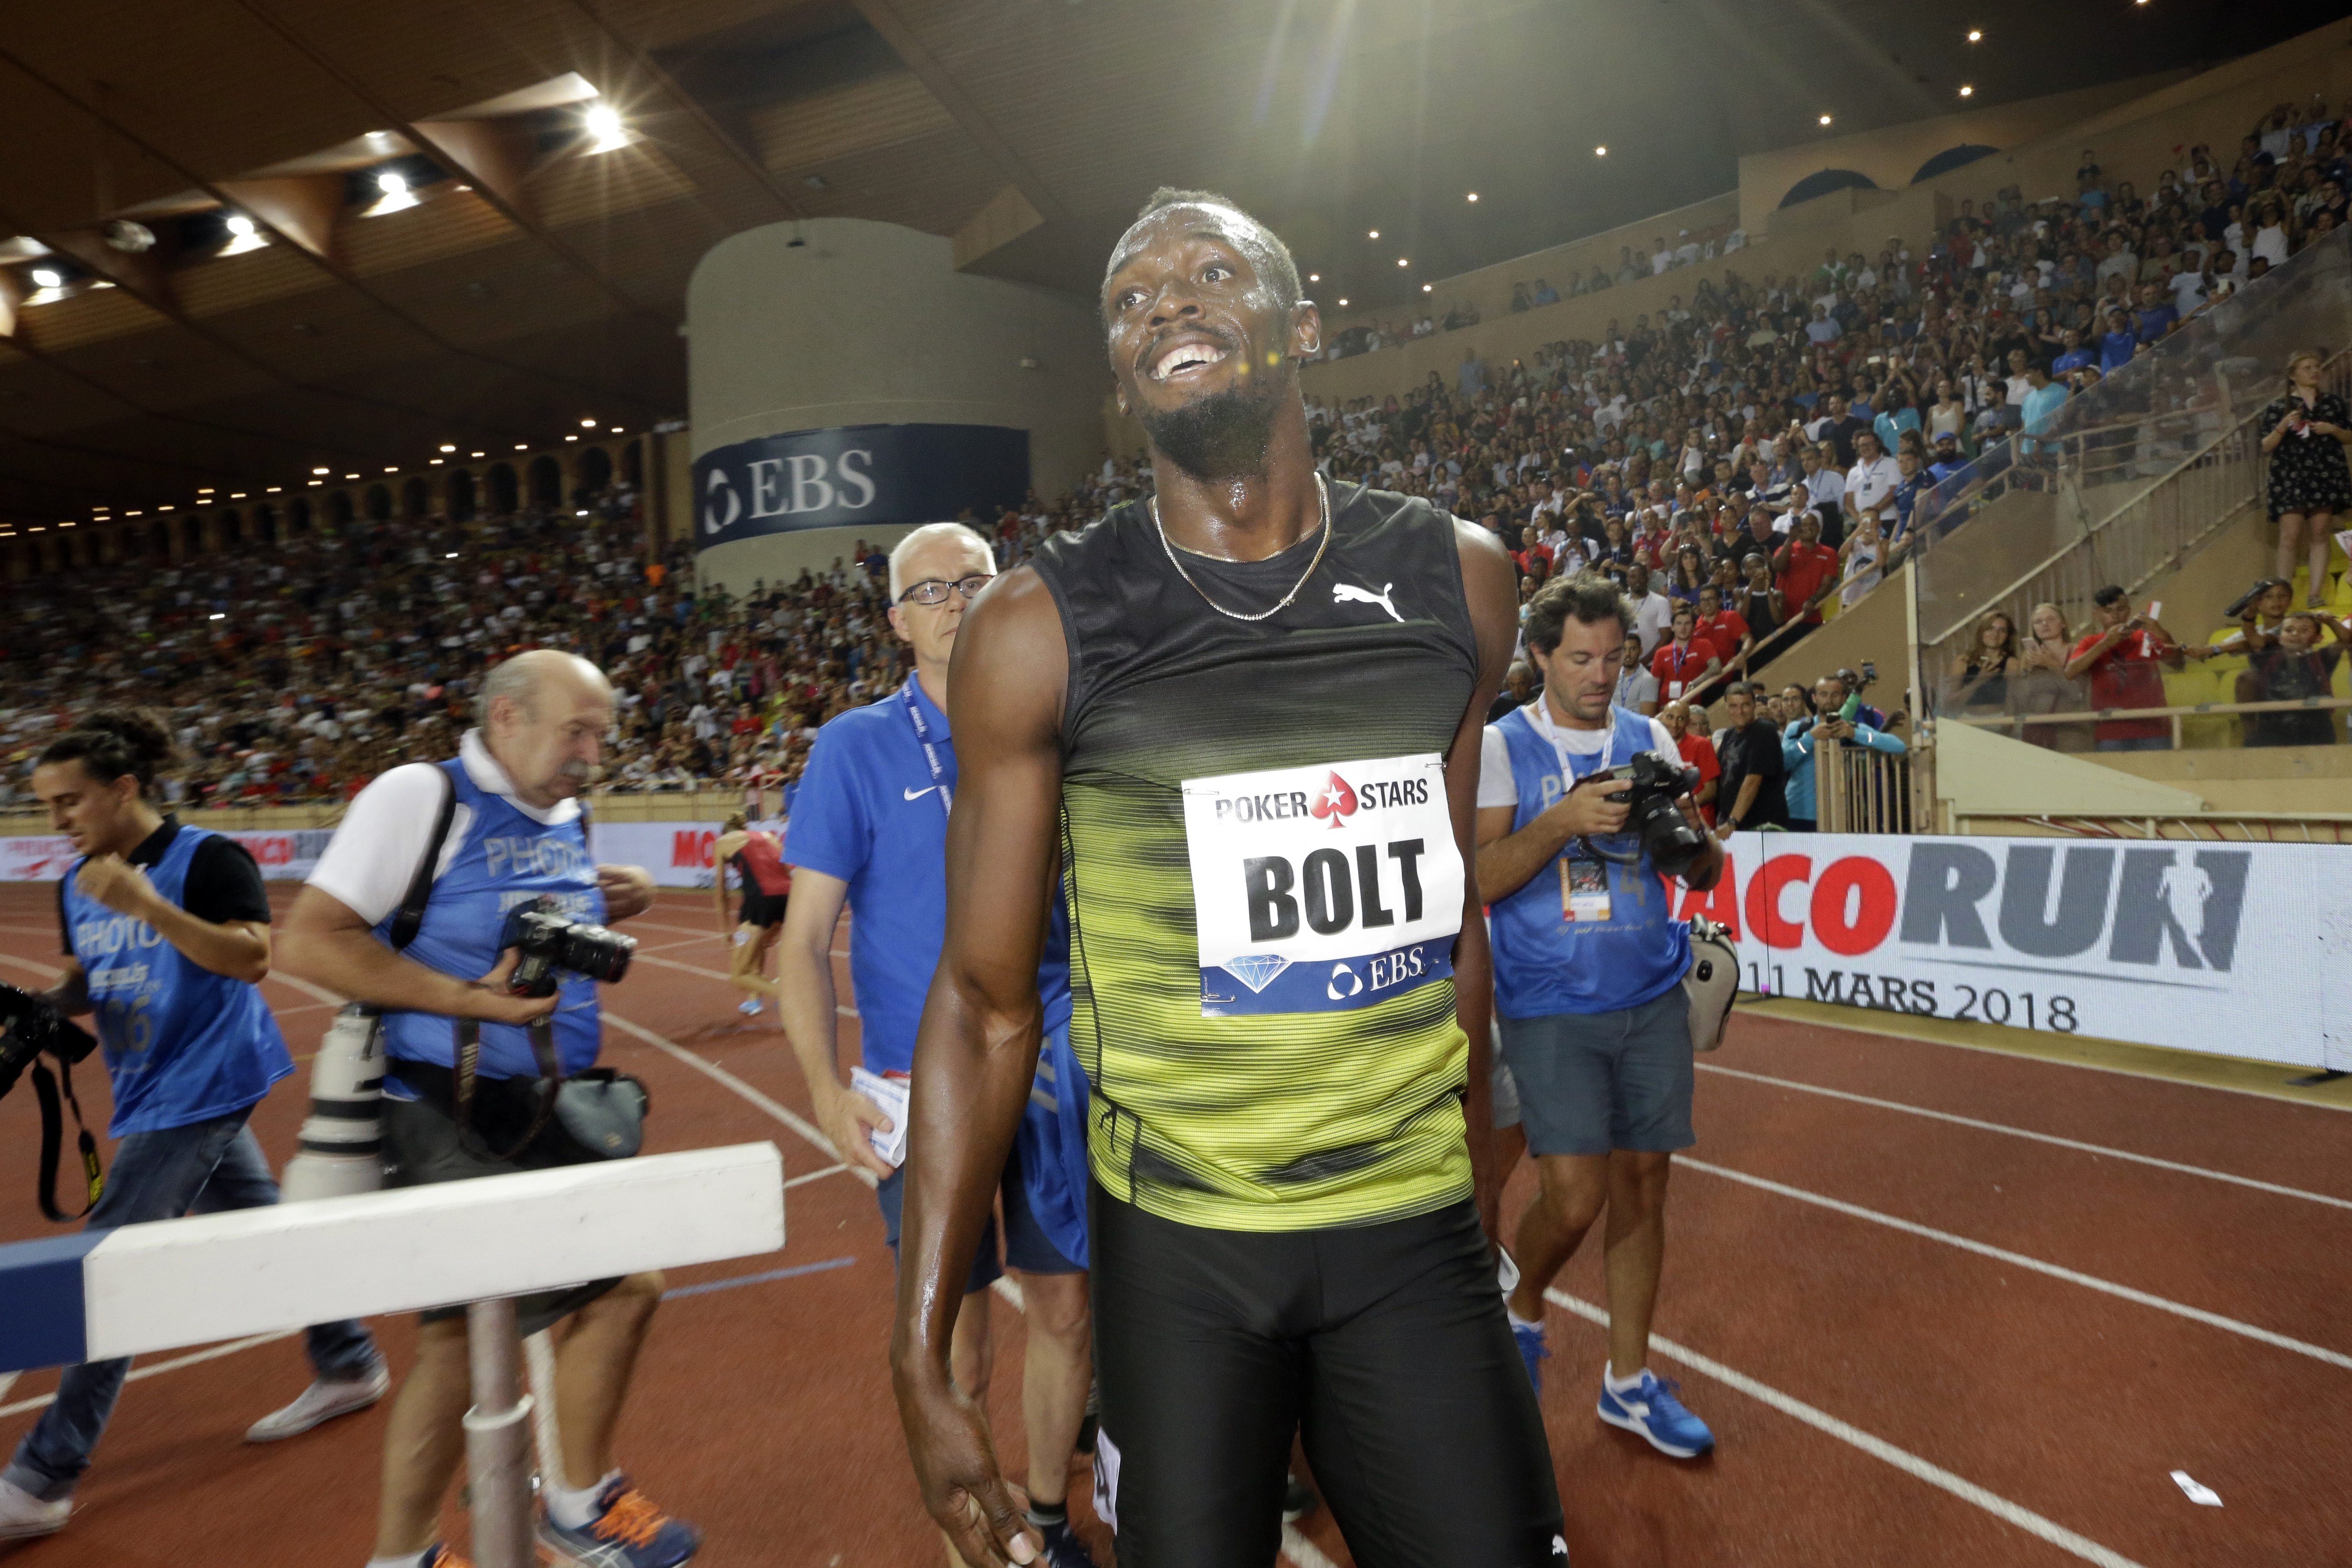 Usain Bolt from Jamaica reacts after winning the men's 100m race at the IAAF Diamond League Athletics meeting at the Louis II Stadium in Monaco, Friday, July 21, 2017. Eight-time Olympic champion Usain Bolt competes in his final Diamond League meeting ahe